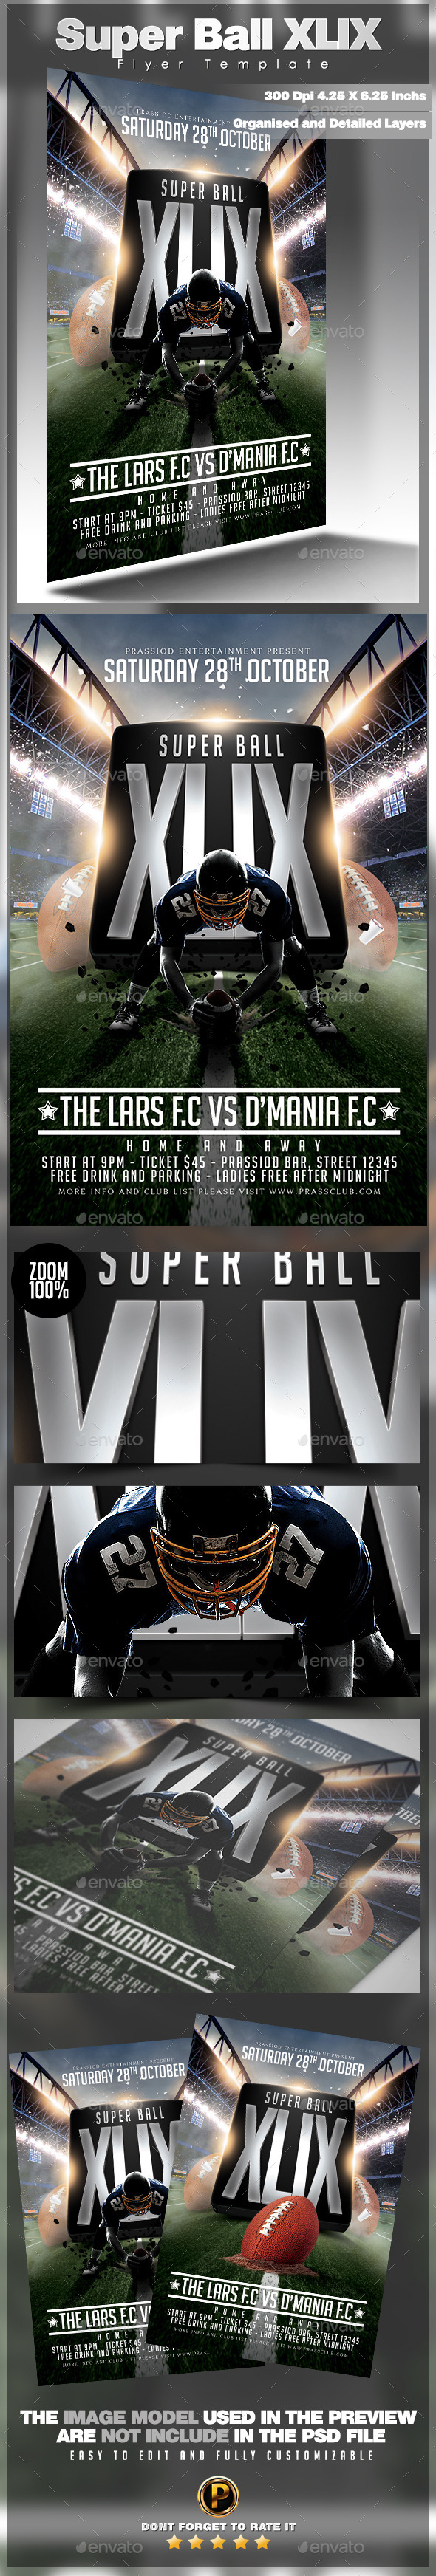 Super Ball XLIX Flyer Template - Sports Events